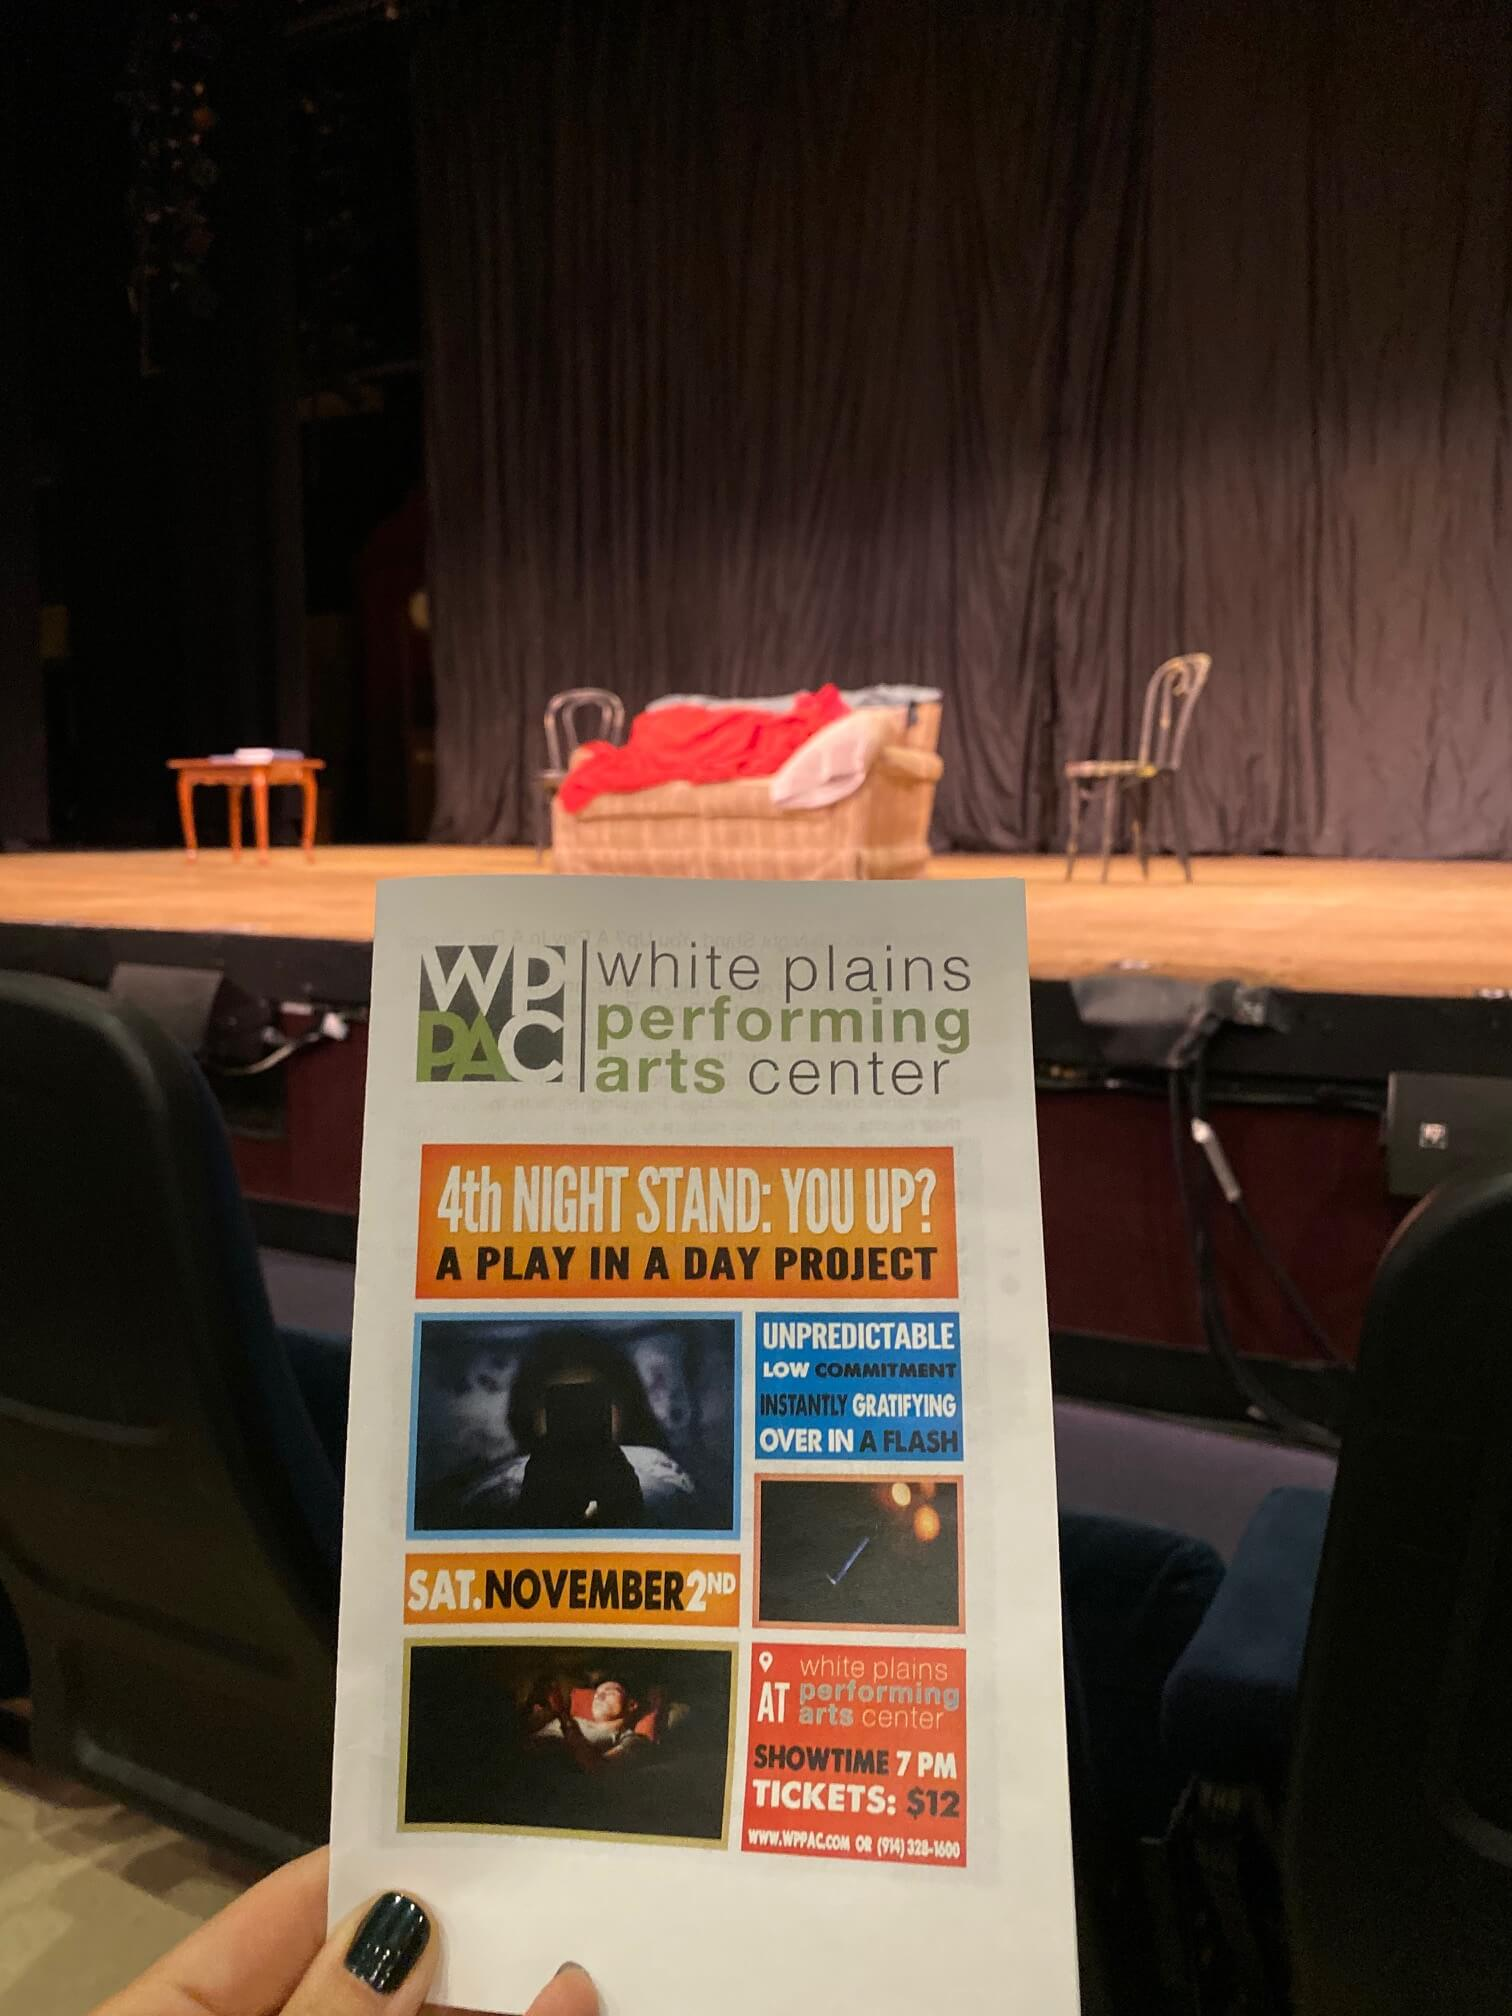 best experiences of 2019 white plains theater